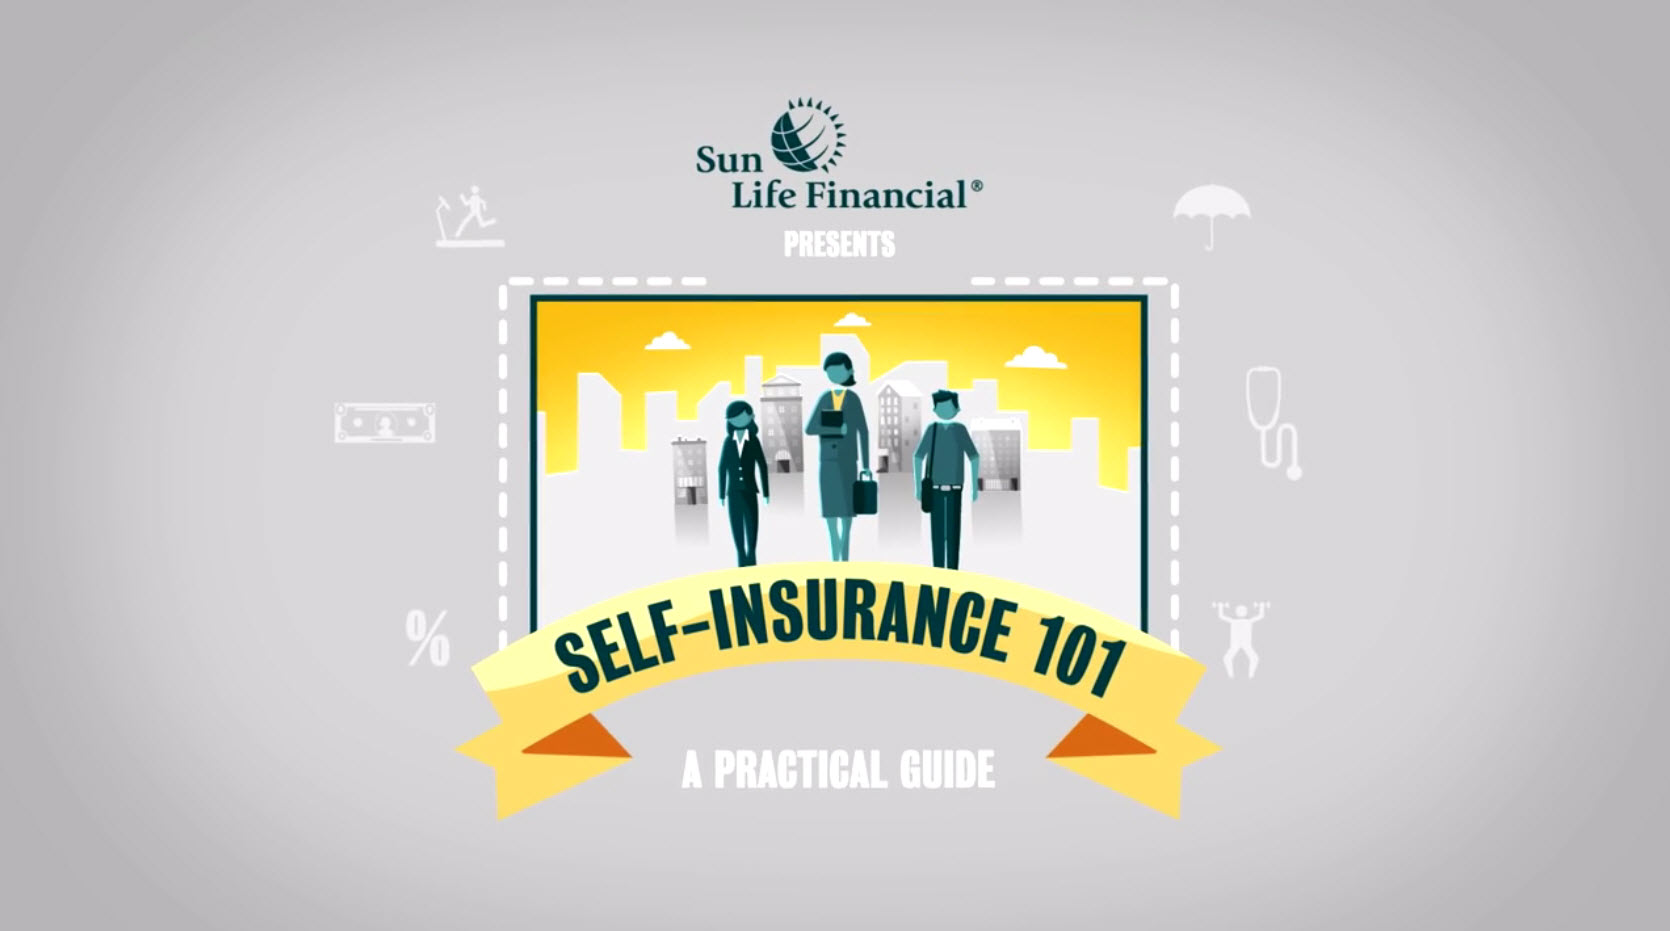 Self-Insurance 101- A Practical Guide